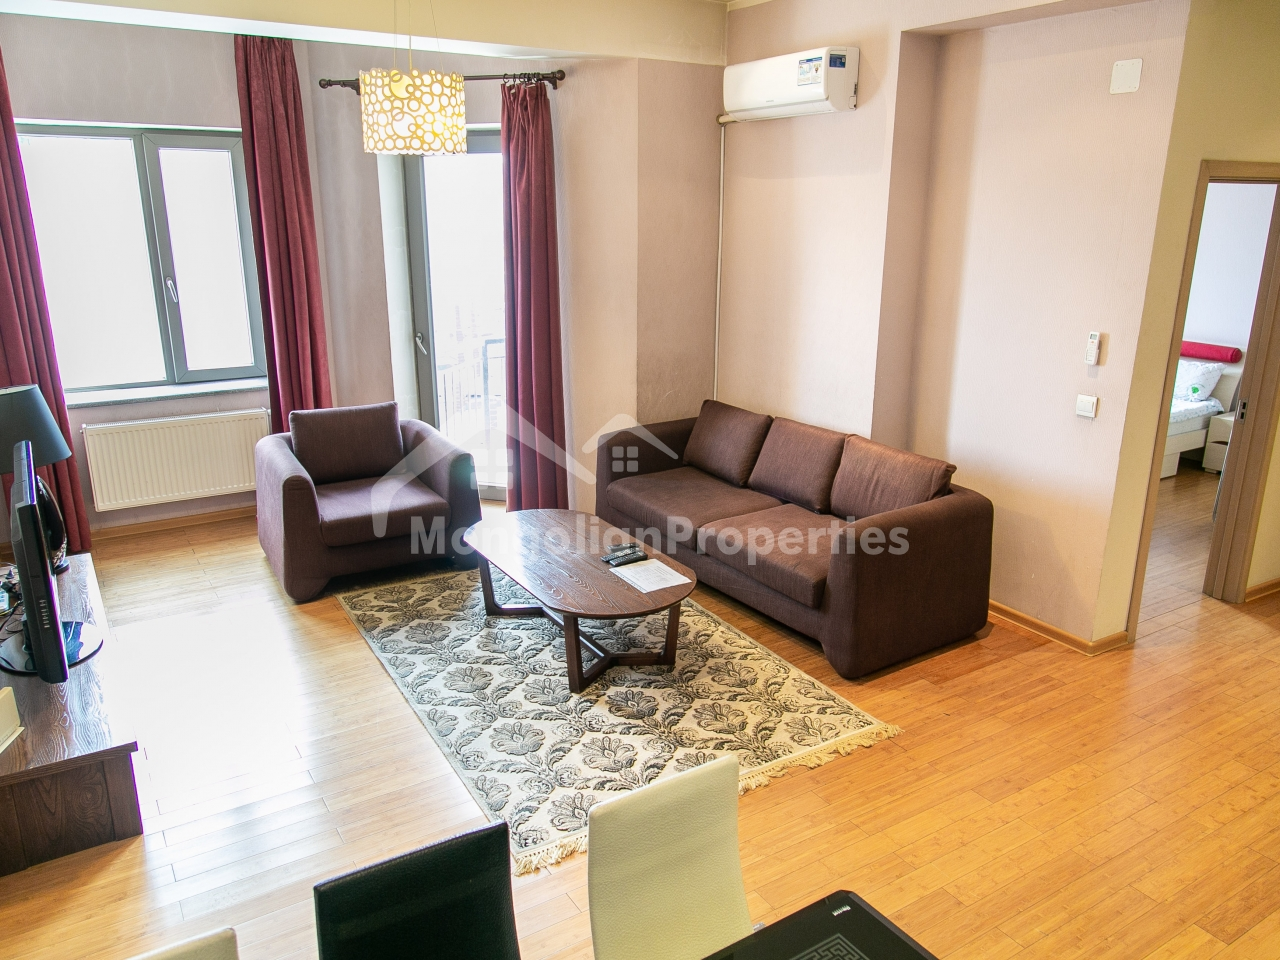 FOR RENT: 2-BEDROOM APARTMENT AT REGENCY RESIDENCE